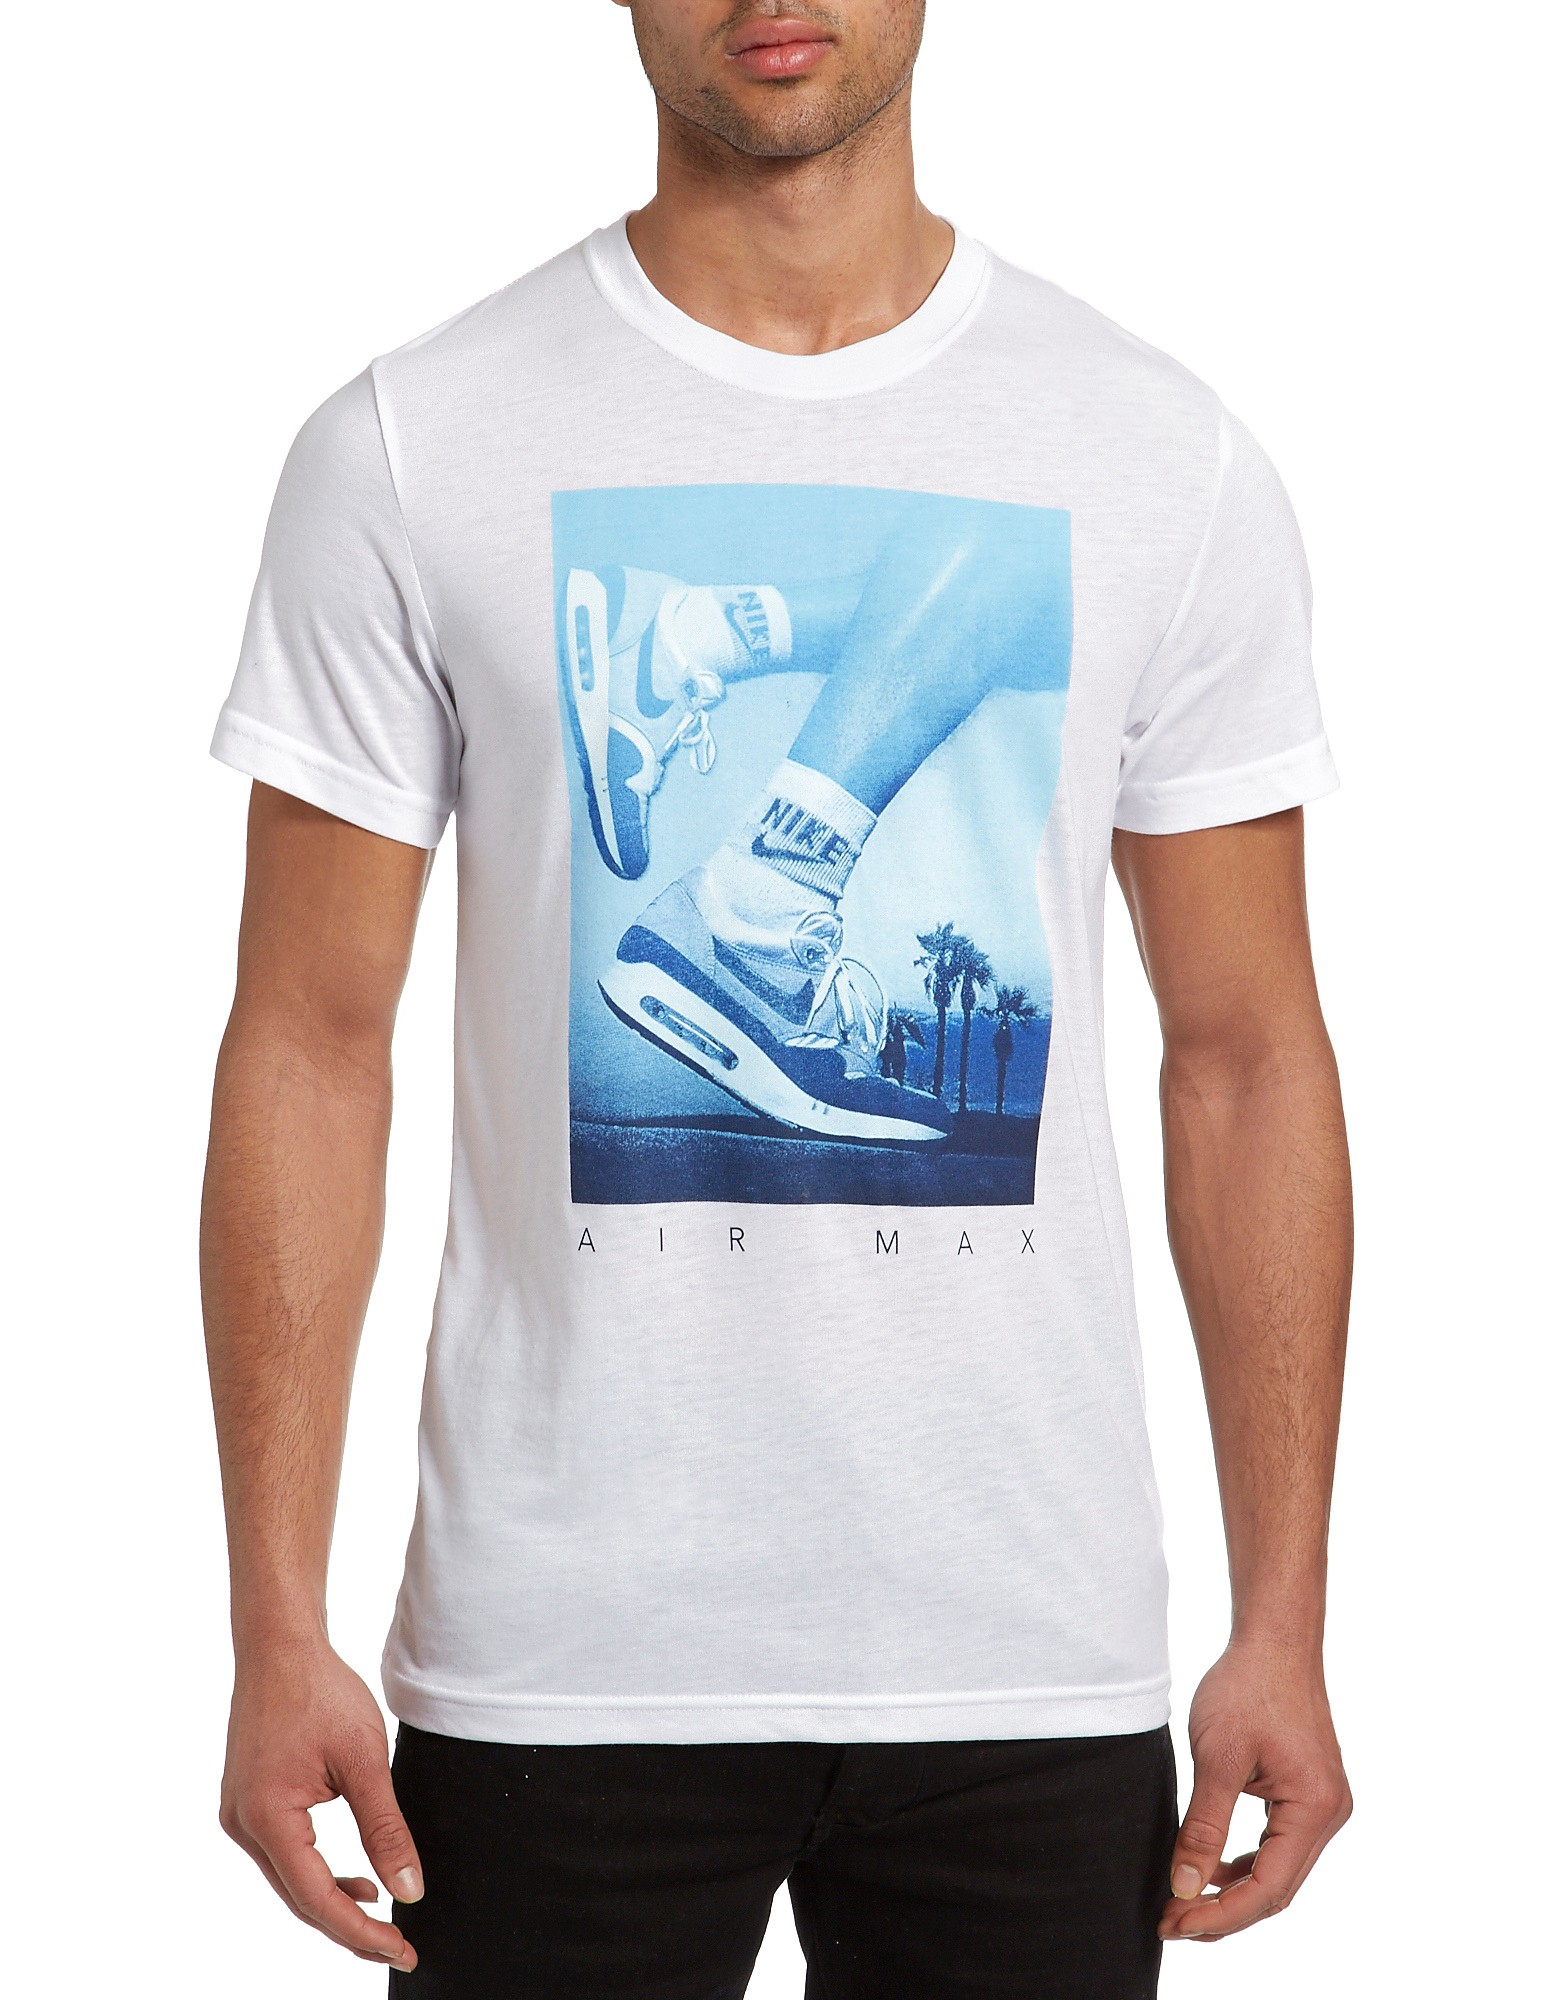 Nike RU Air Max Photo T-Shirt product image